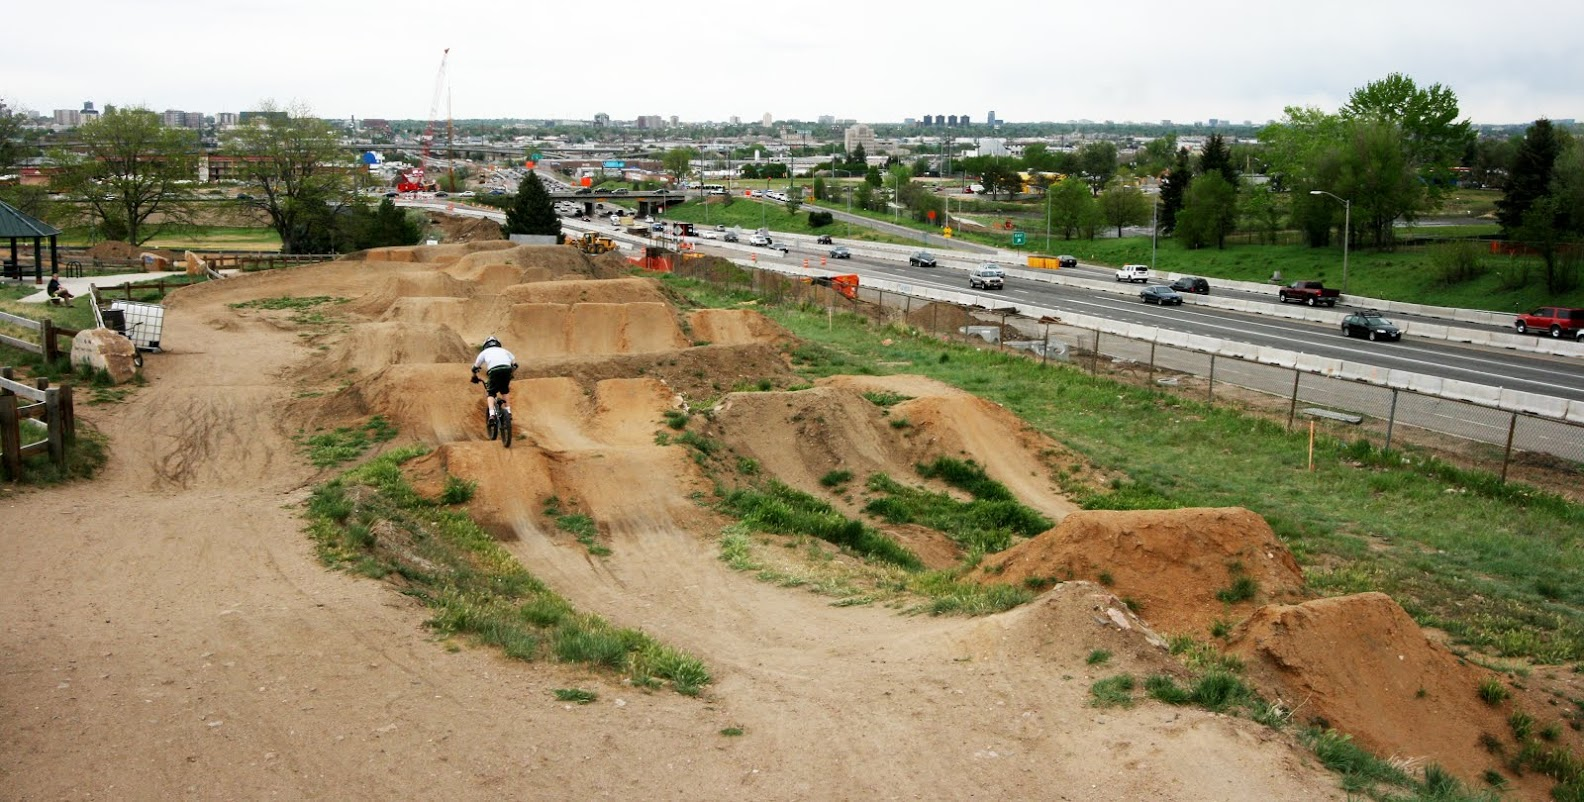 TGR's Ultimate Guide To Front Range Bike Parks | Teton